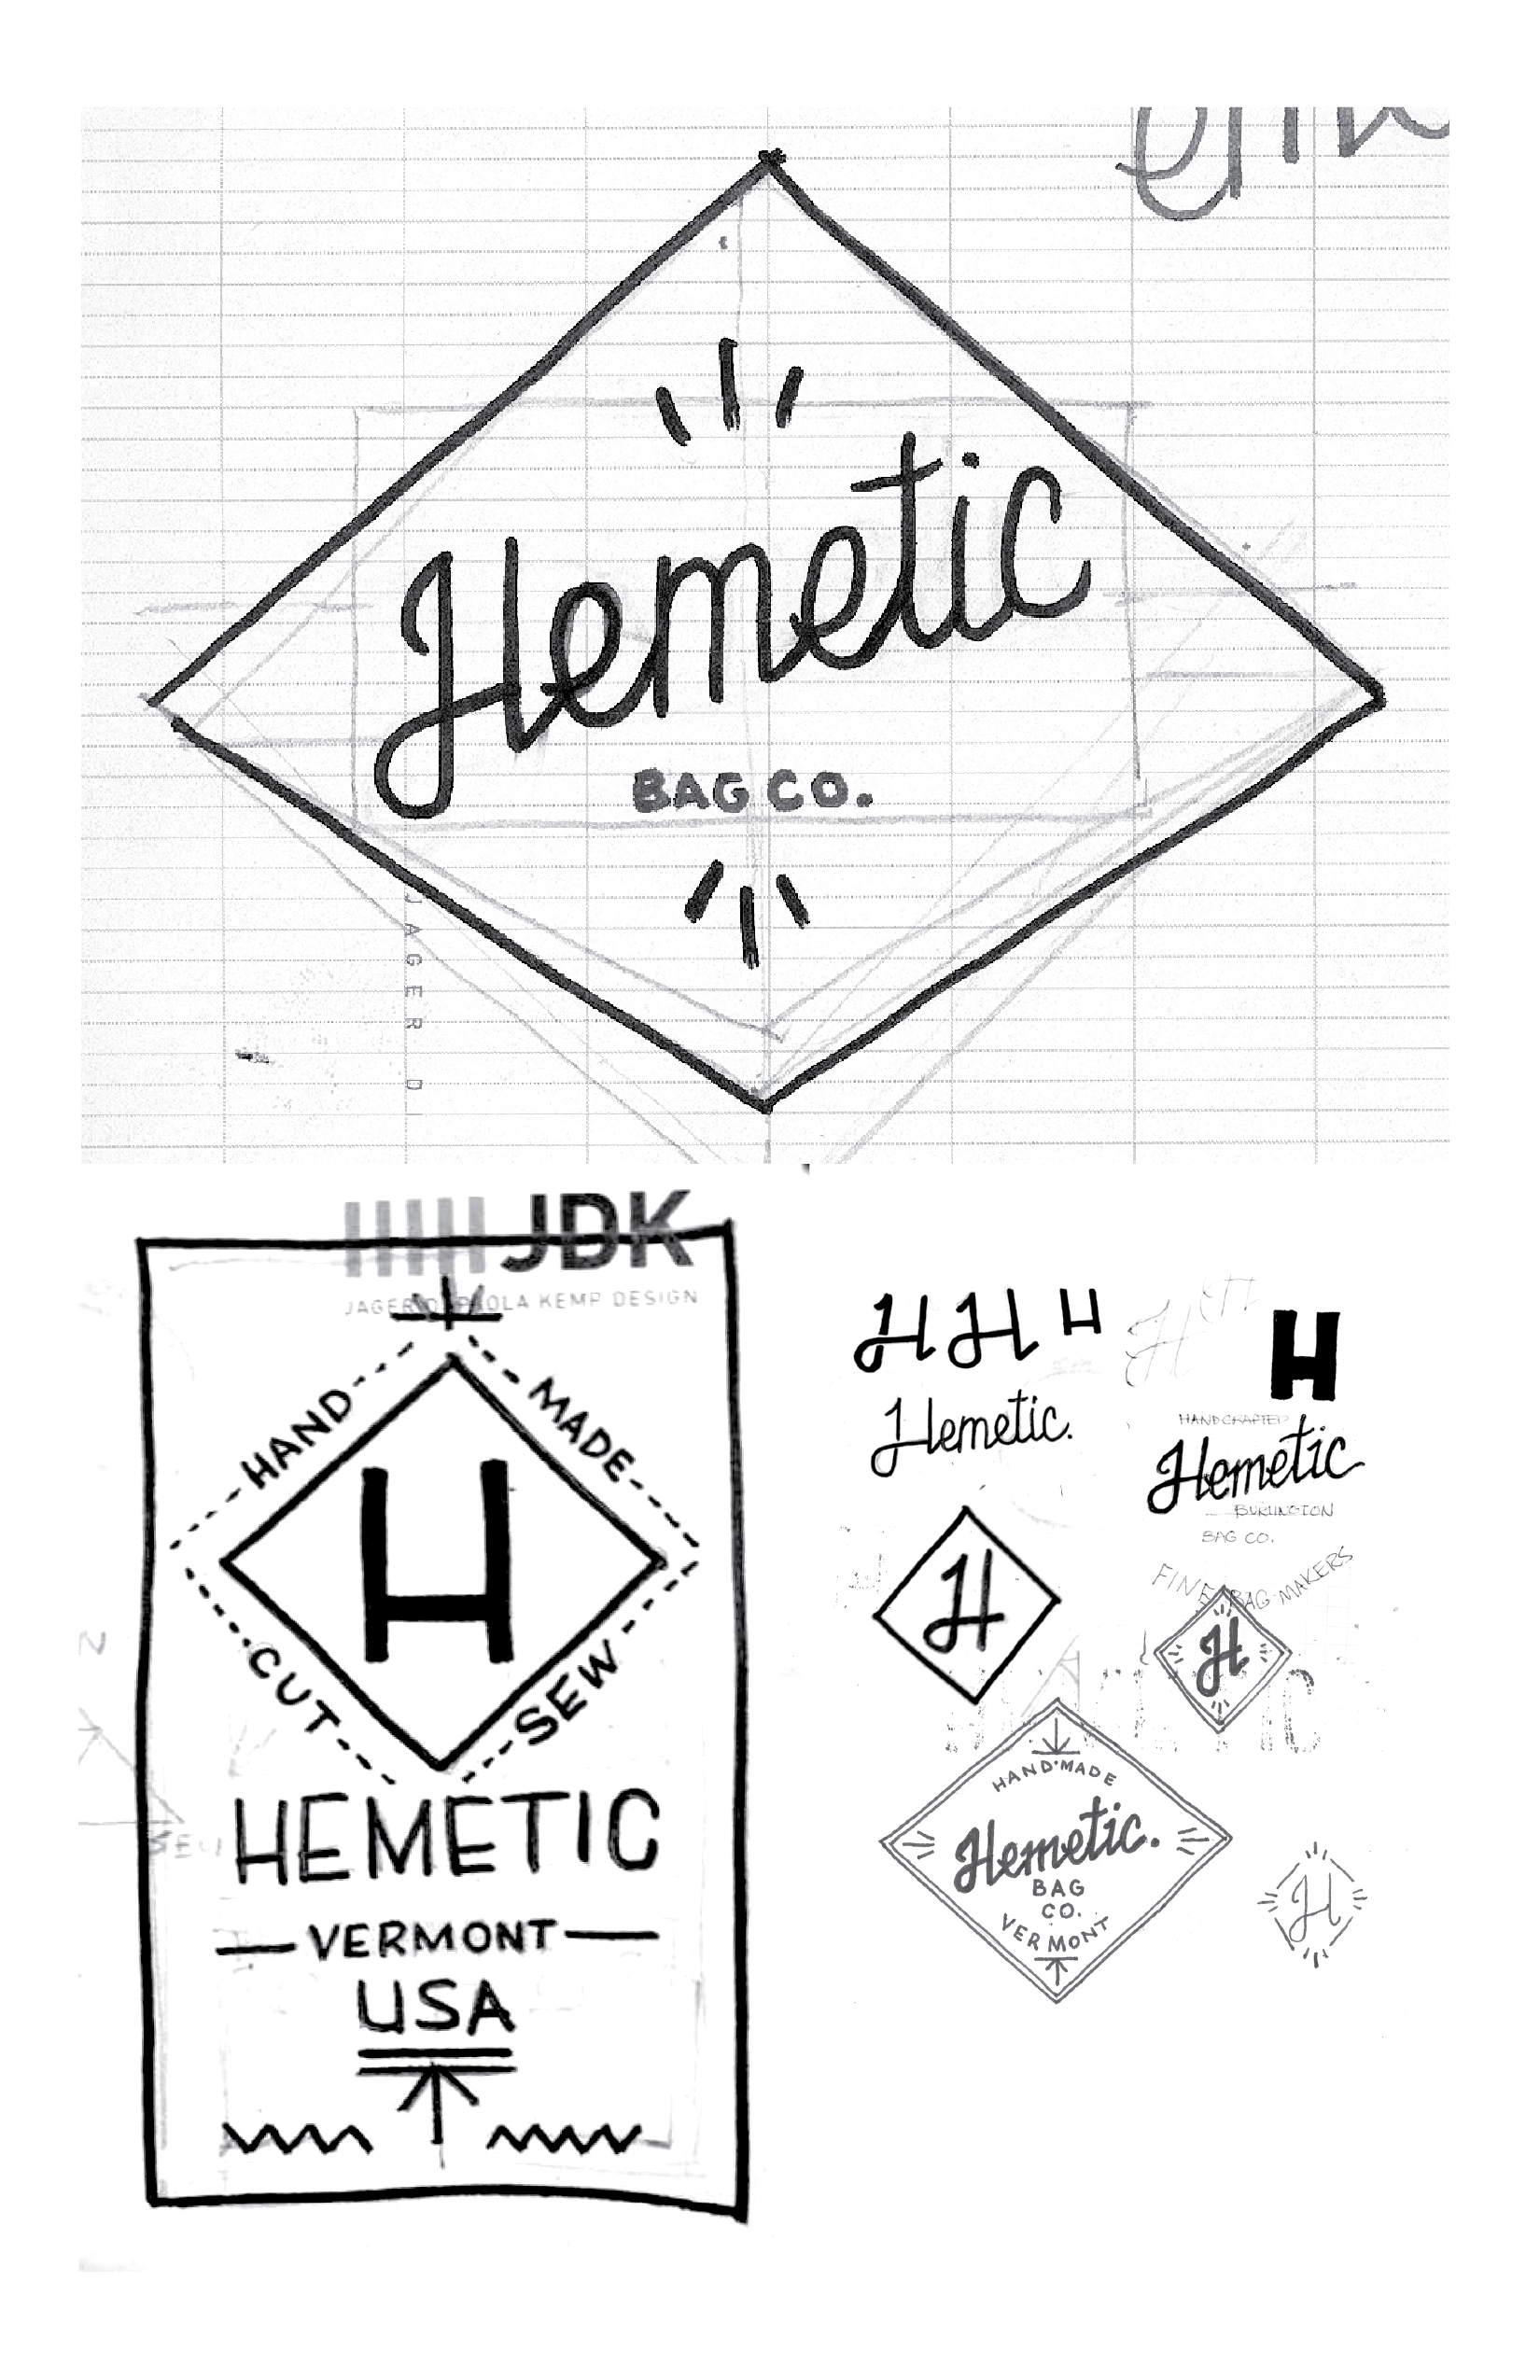 Hemetic Trading Co. - image 9 - student project